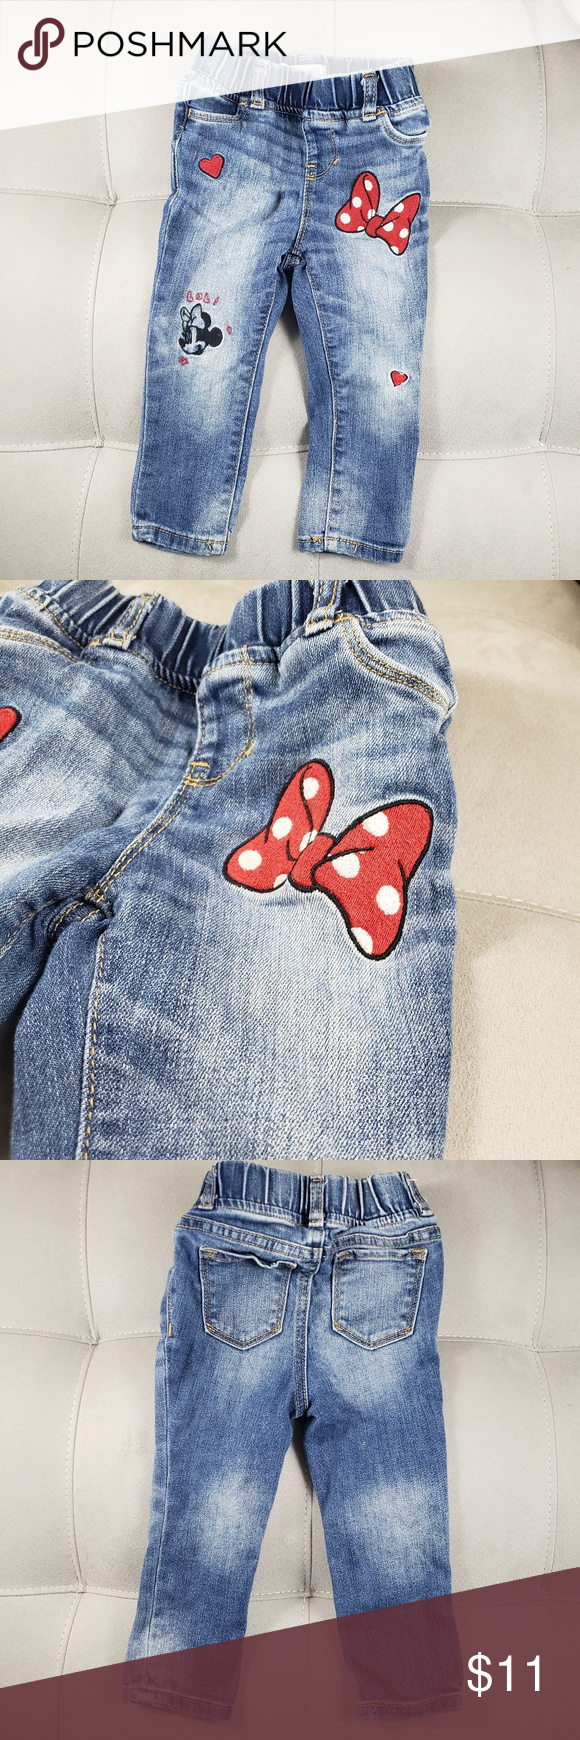 Toddler Girl Disney Minnie Mouse Embroidered Jeans Embroidered Jeans Toddler Girl Disney Girls [ 1740 x 580 Pixel ]